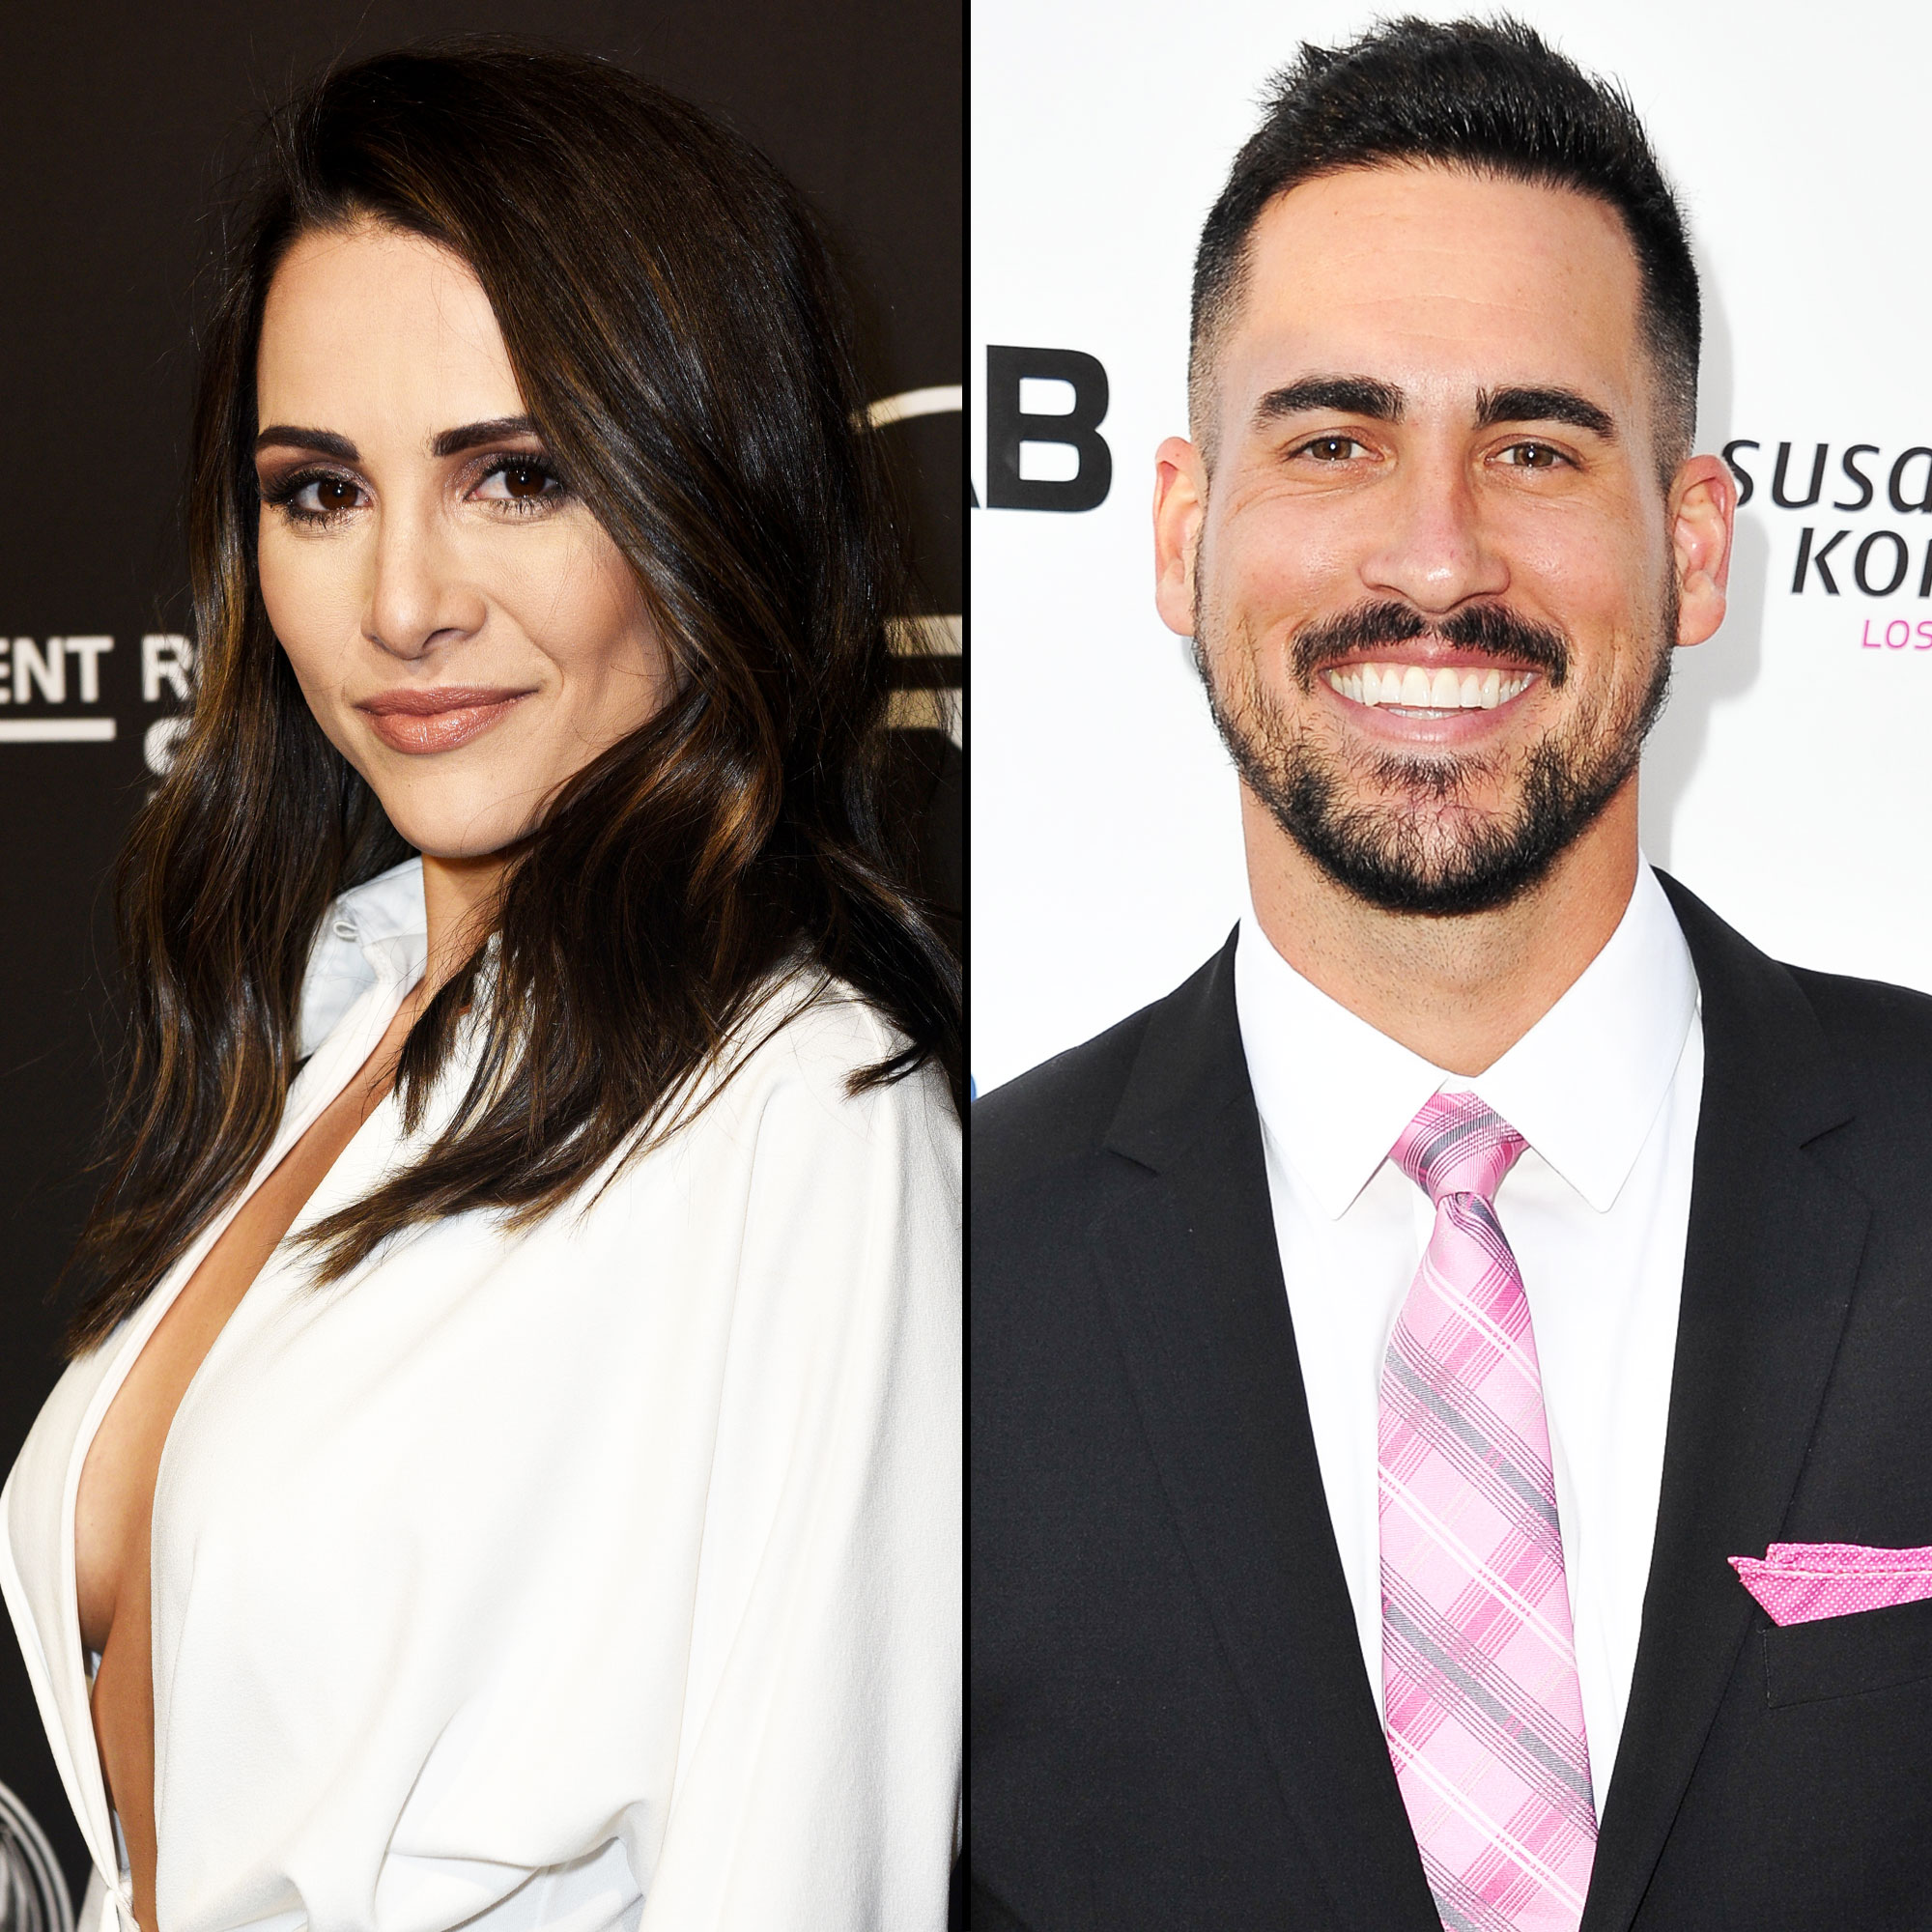 Andi Dorfman Refers to Josh Murray's 'Devil Emoji' Photo During 'The Bachelor' Finale - Andi Dorfman and Josh Murray